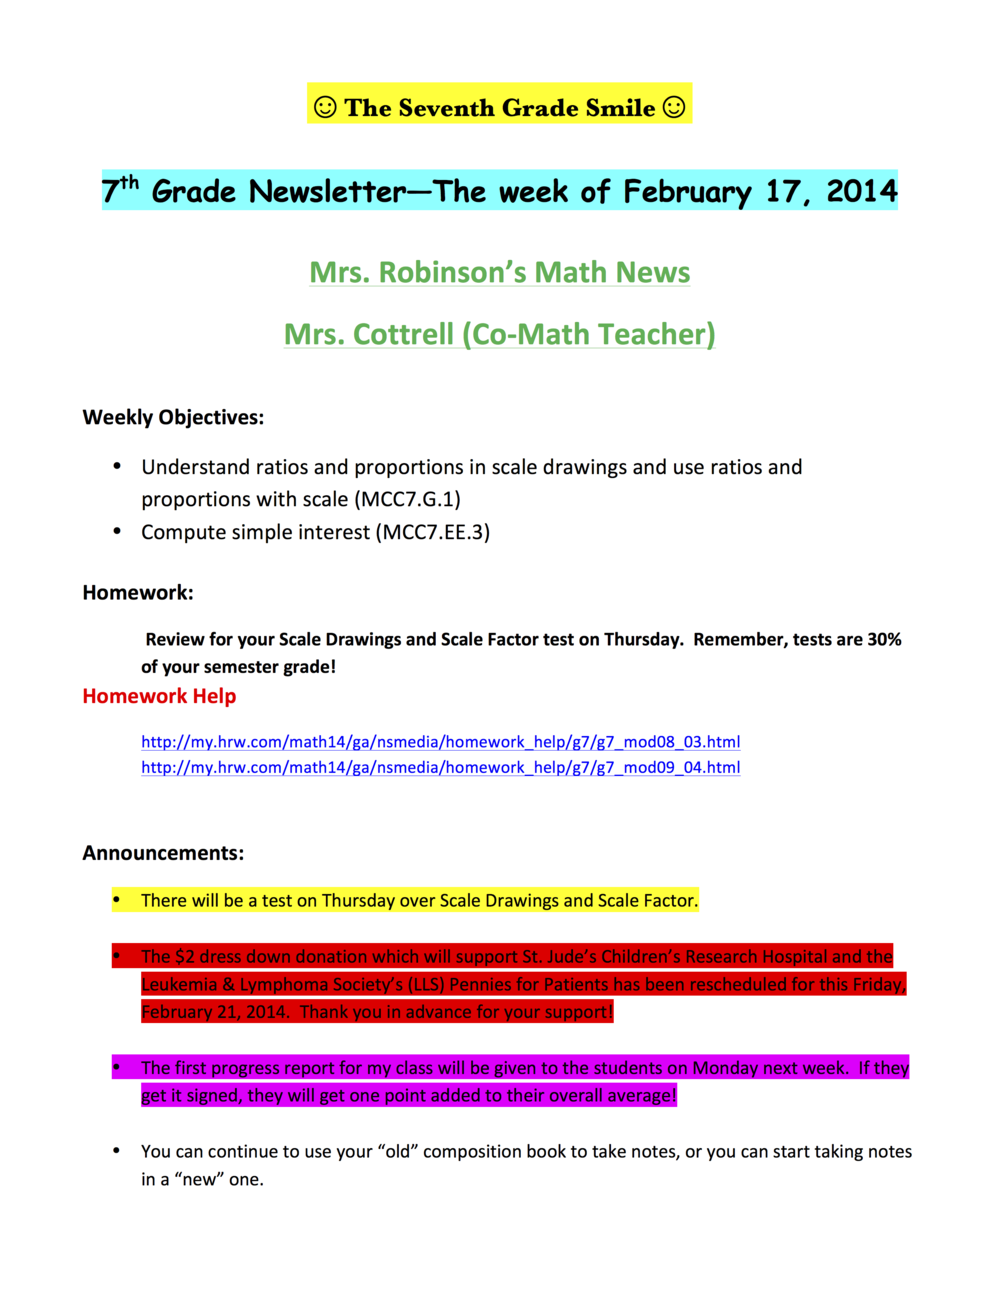 7th Newsletter for Monday, February 17, 2014A.png